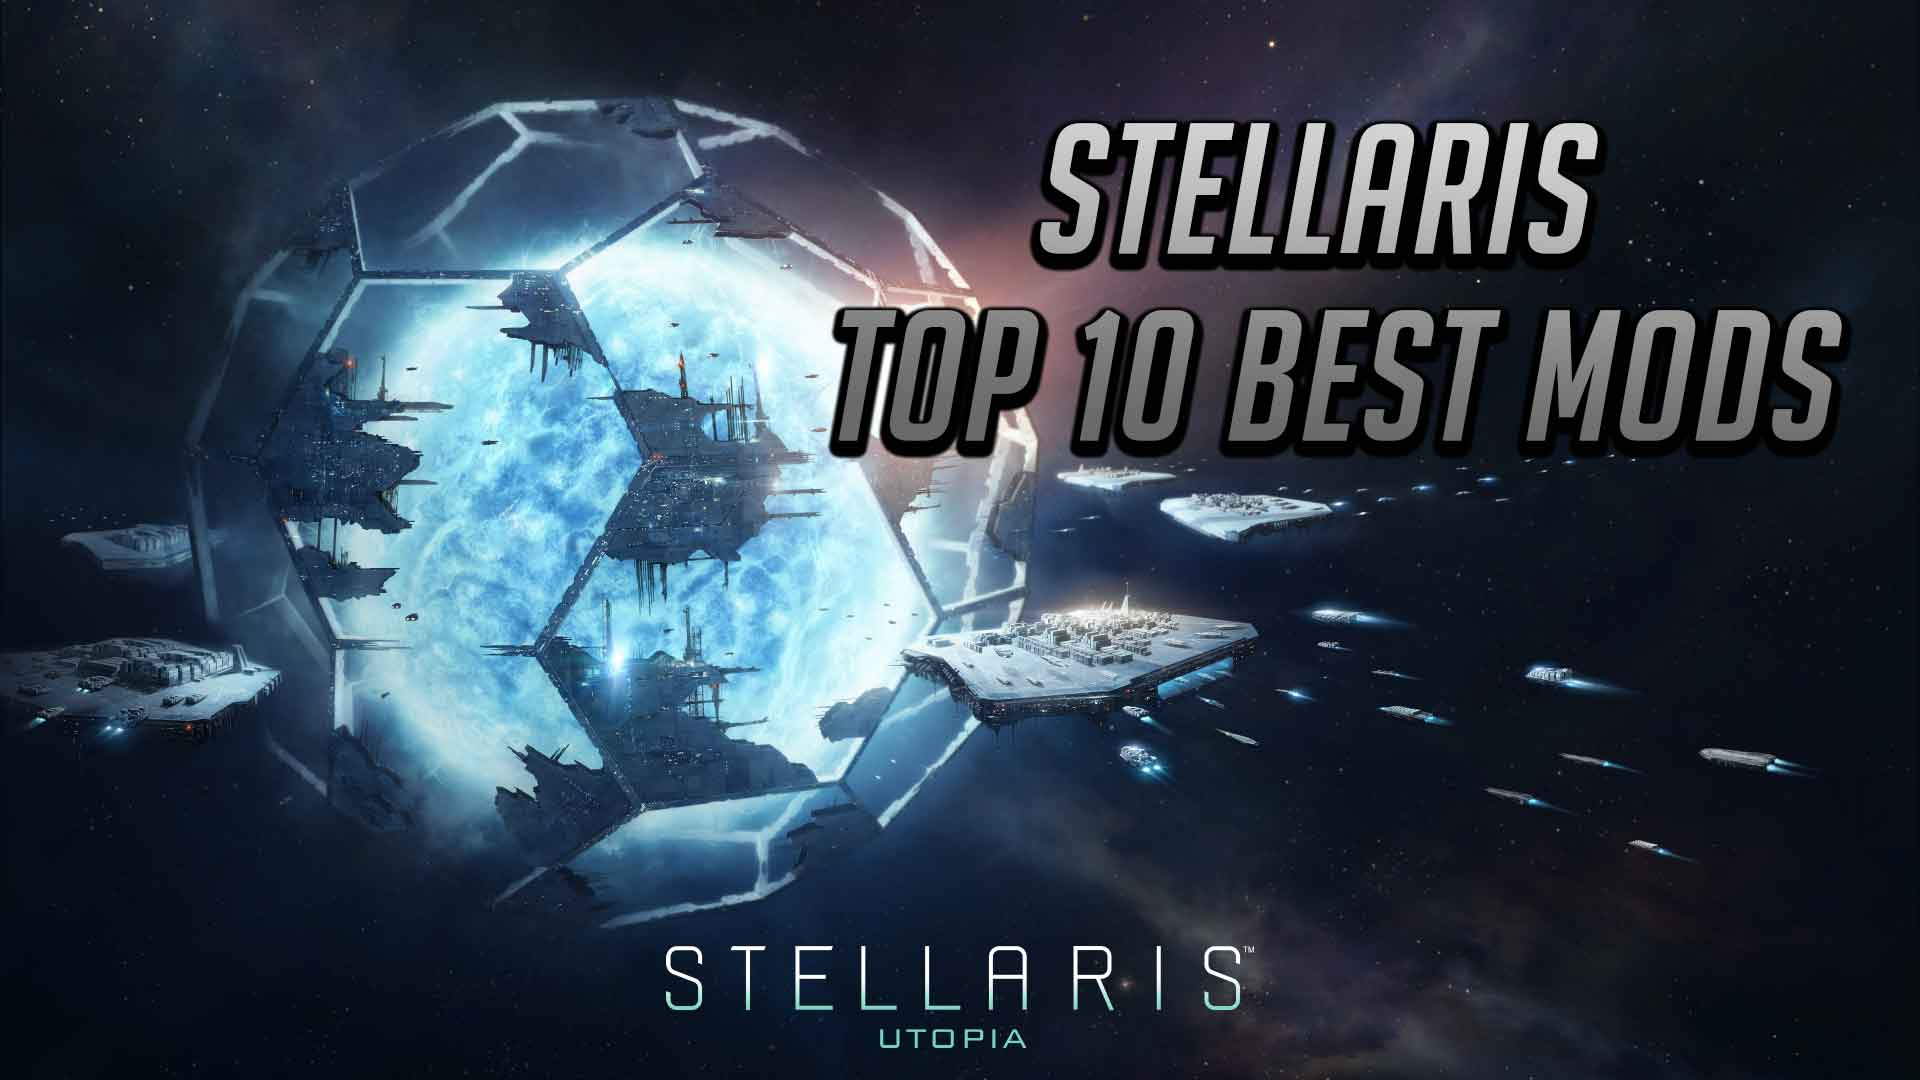 Stellaris Top 10 Best Mods (Updated for 2 2) | Have You Played